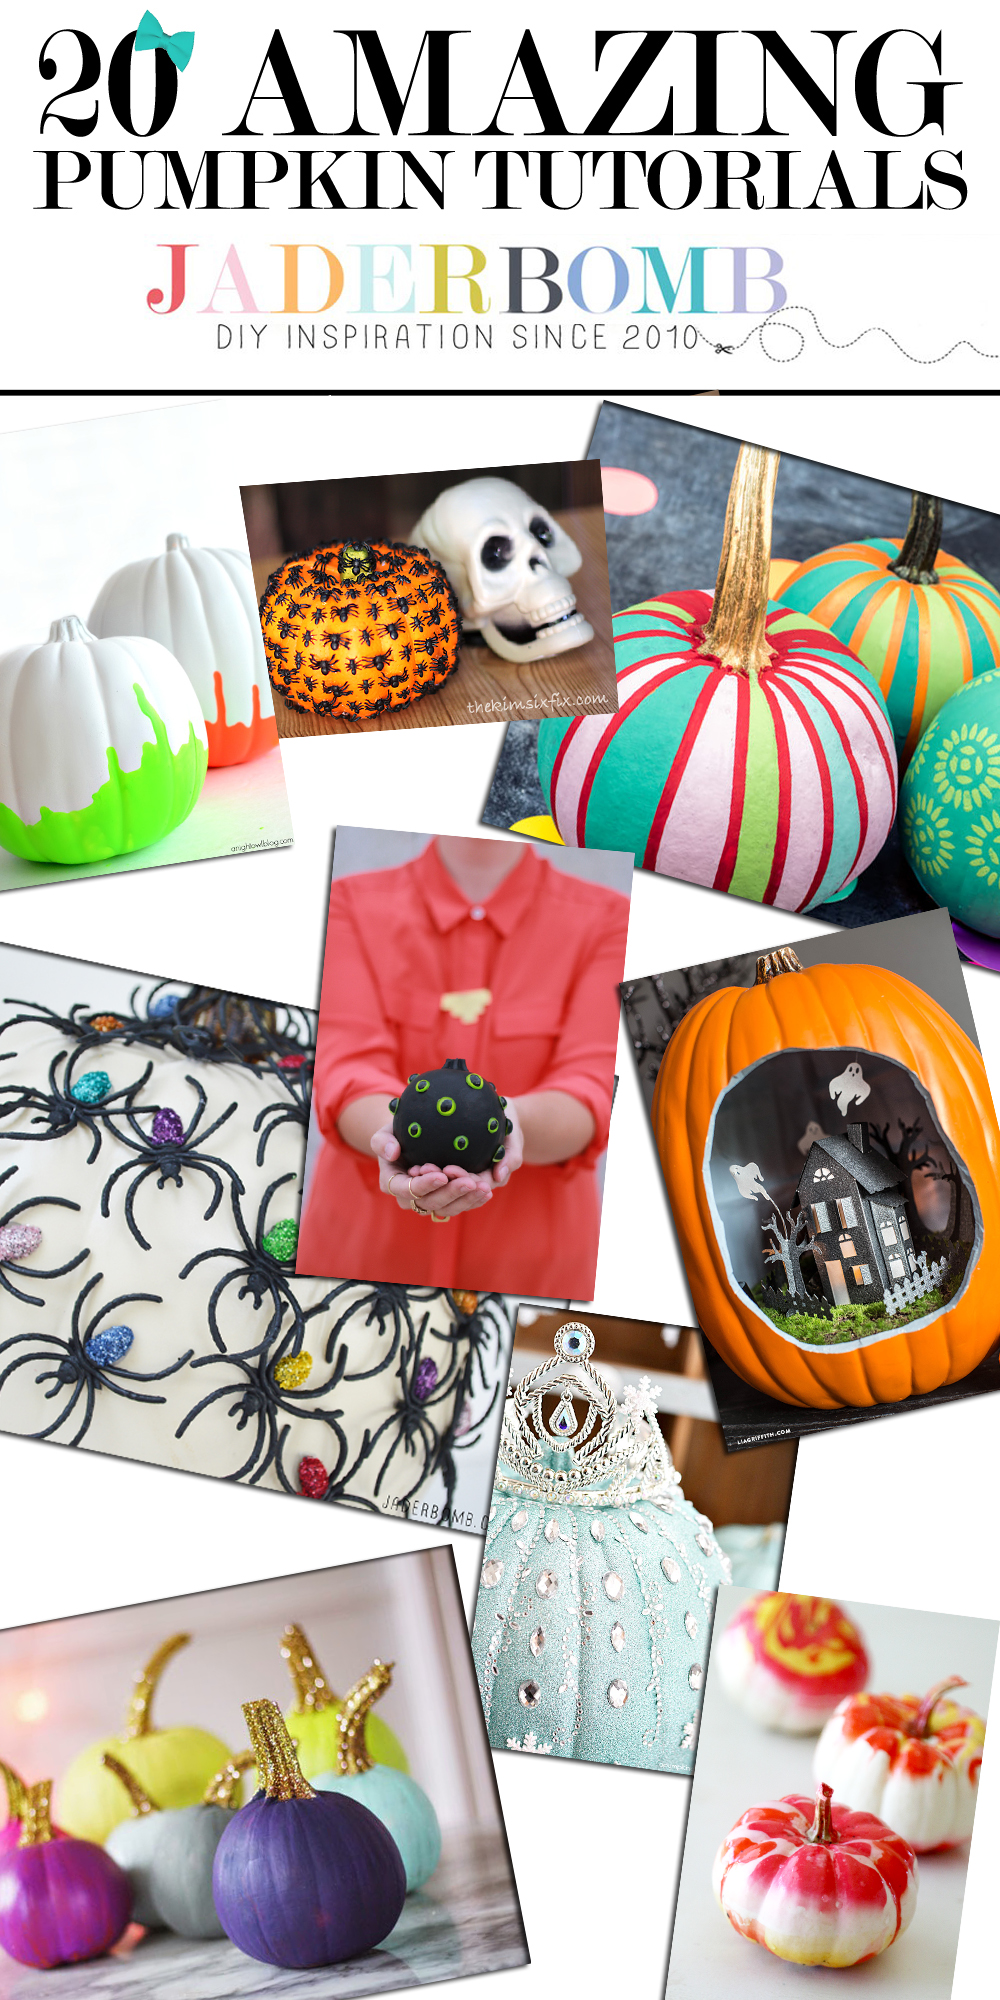 20 DIY PUMPKIN TUTORIALS